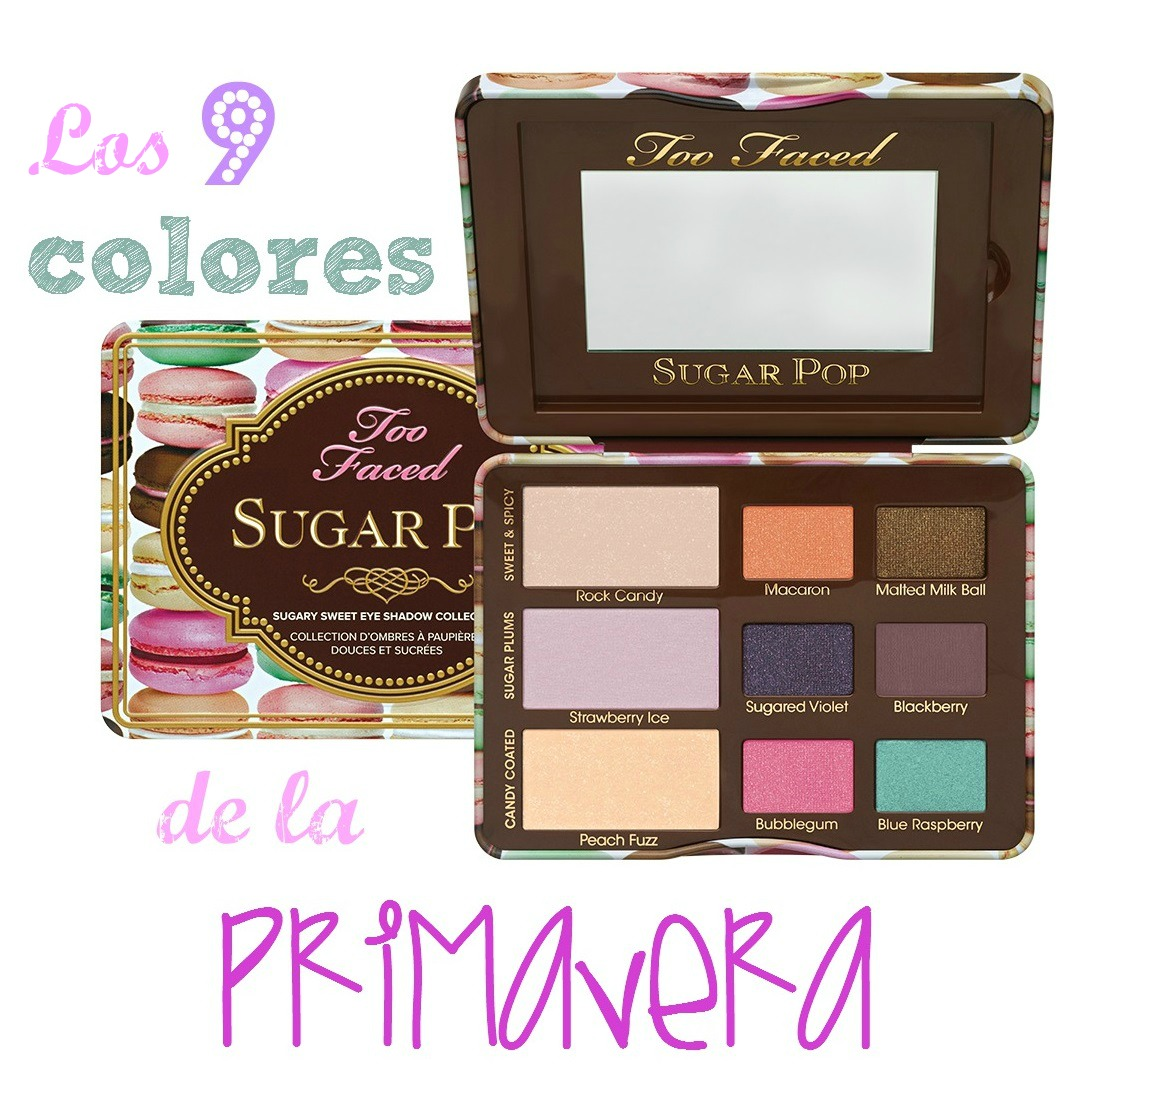 Los 9 colores de la primavera - Too Faced Sugar Pop